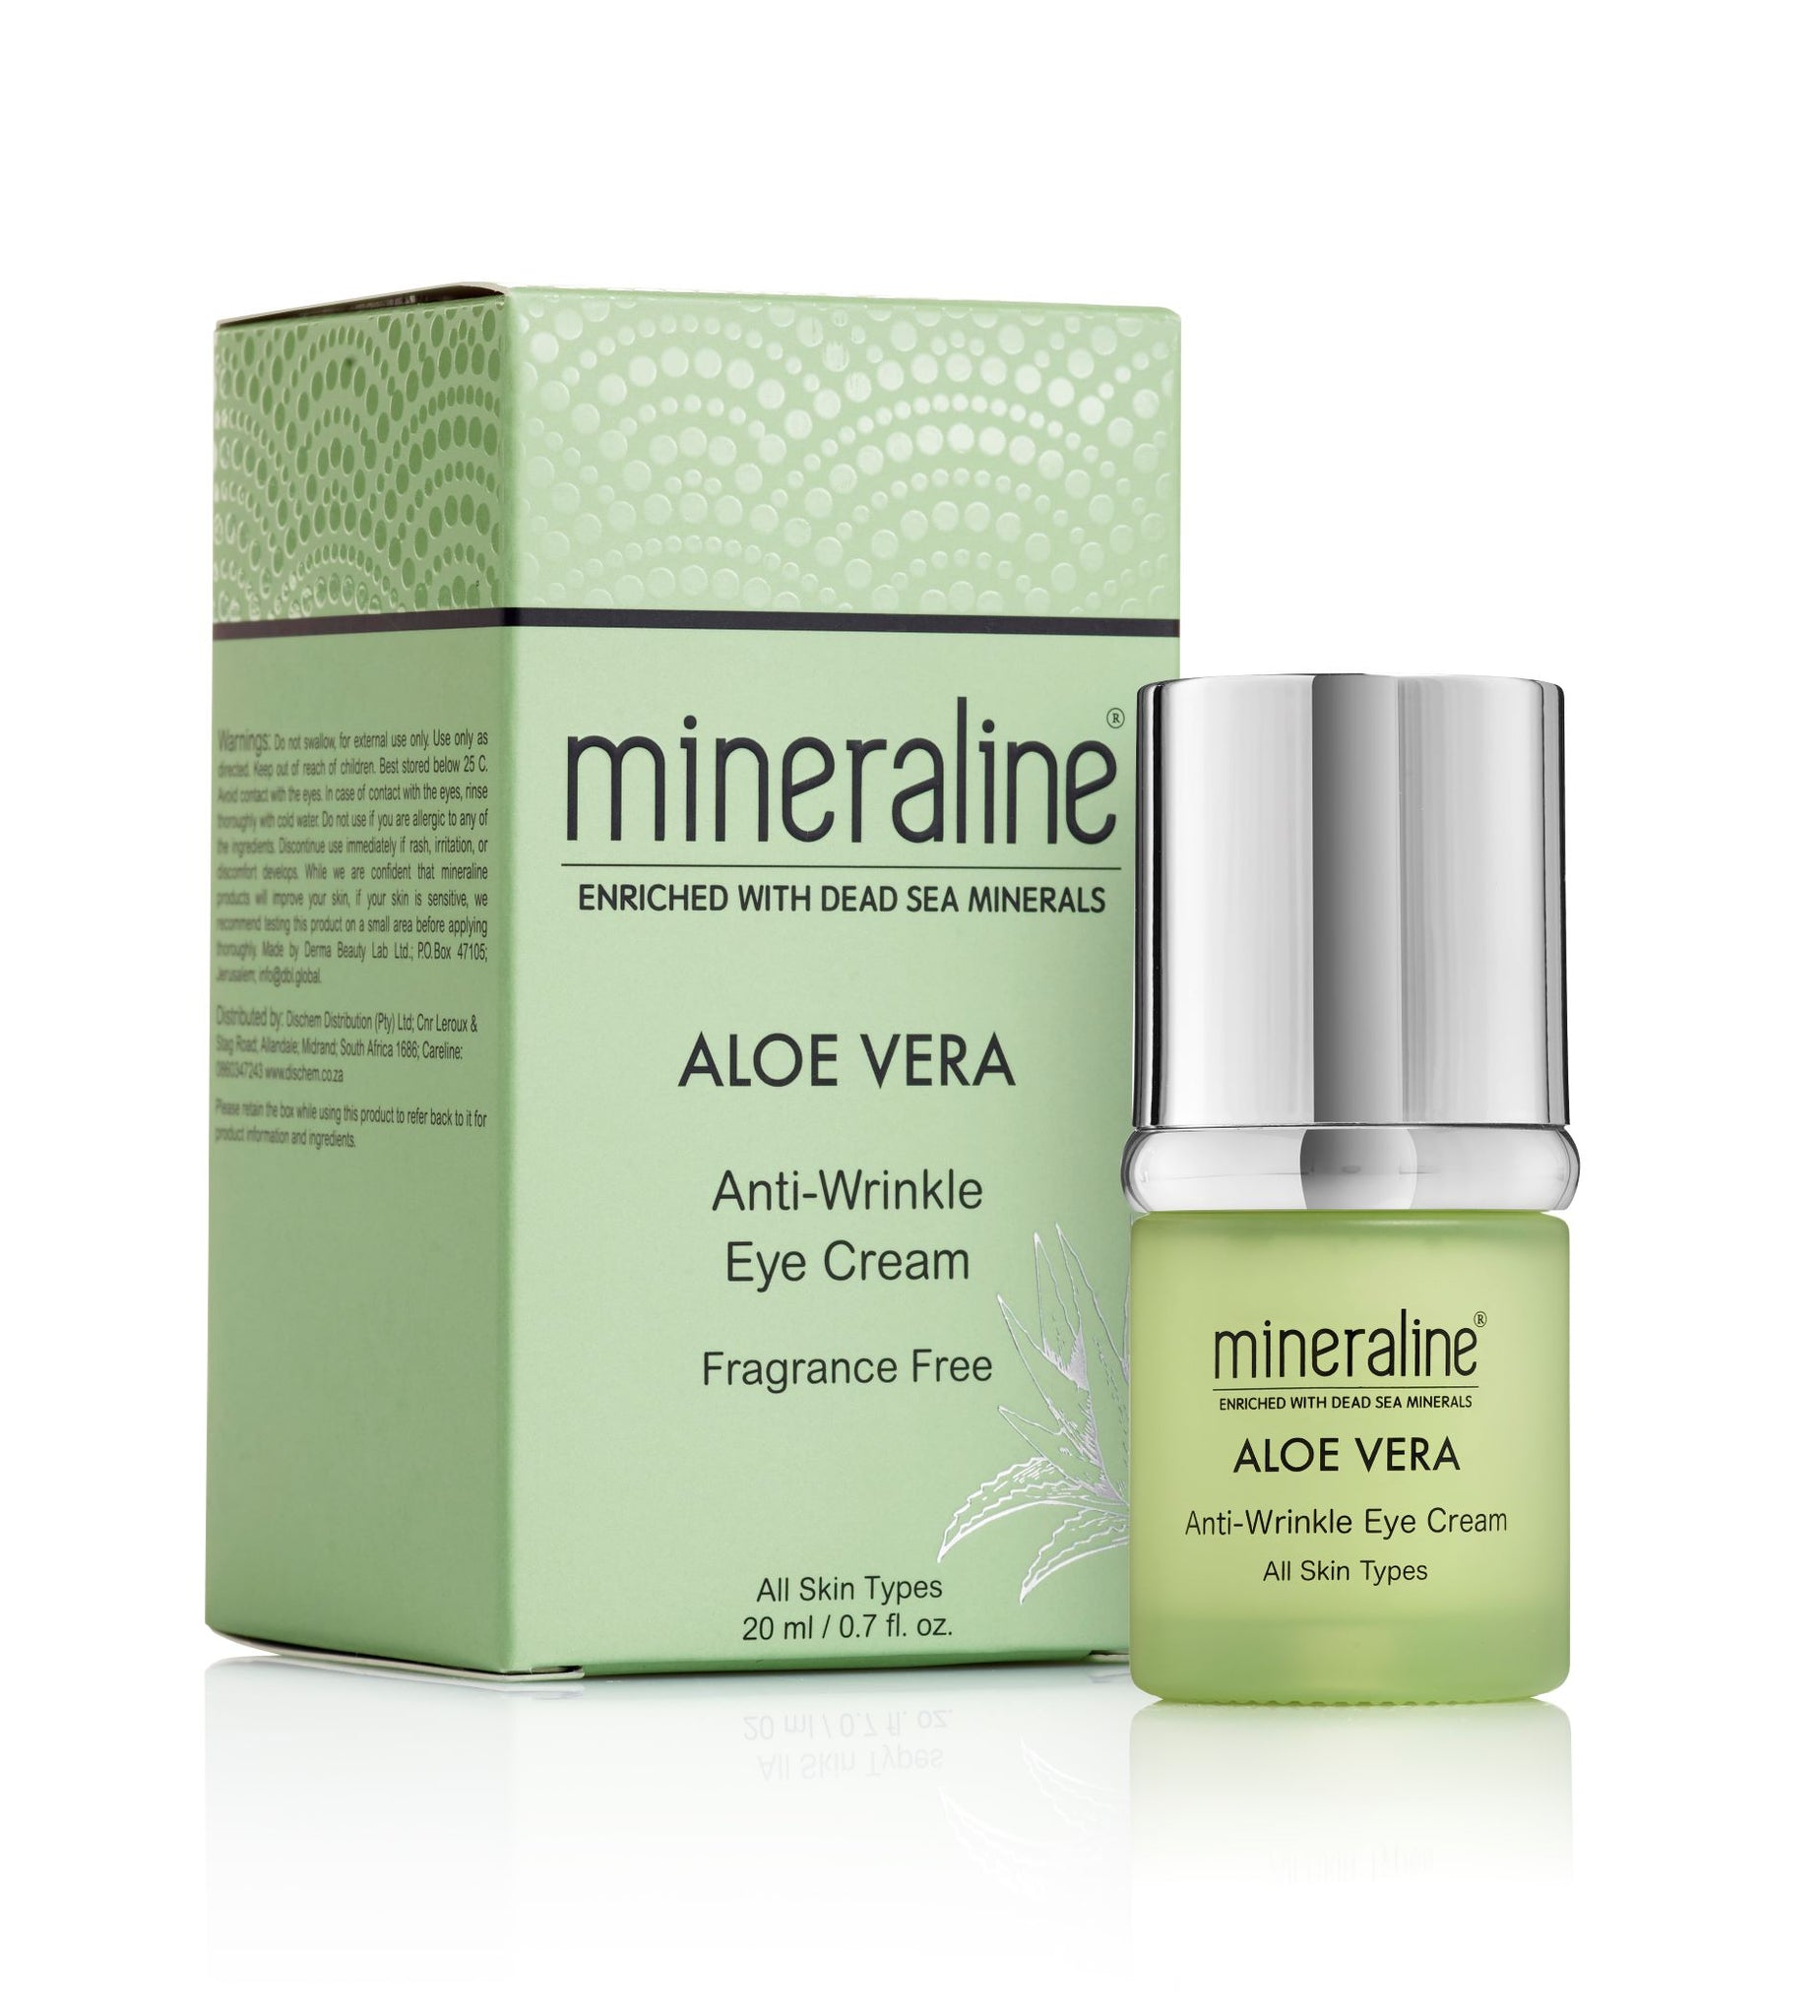 mineraline - Aloe Vera Anti-Wrinkle Eye Cream - Aloe Vera & Dead Sea minerals